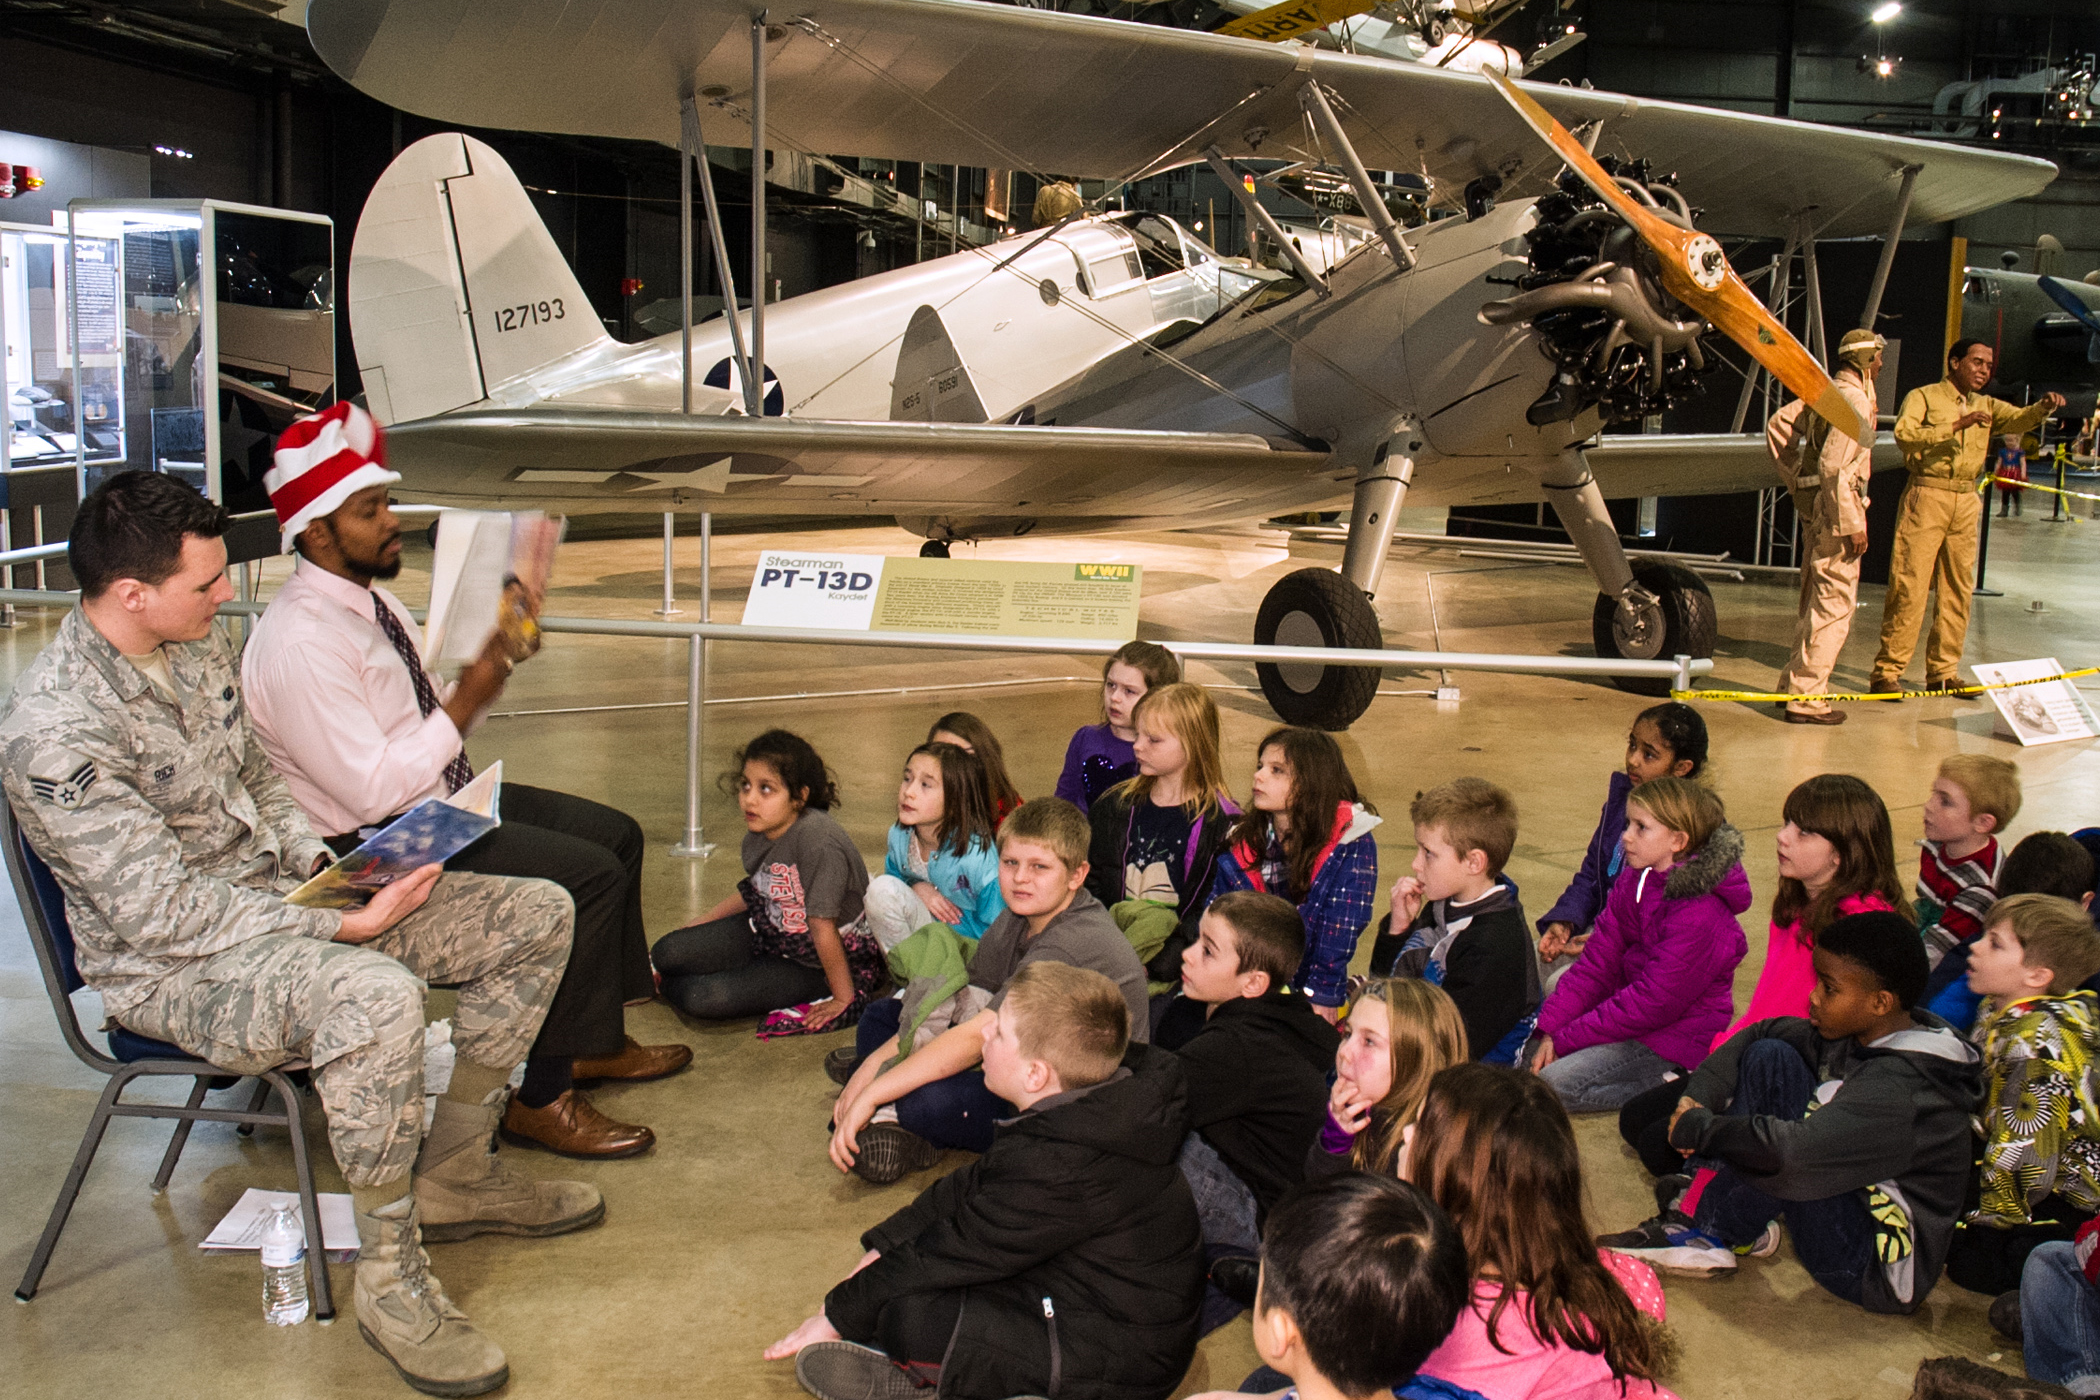 Speaking to a group of children